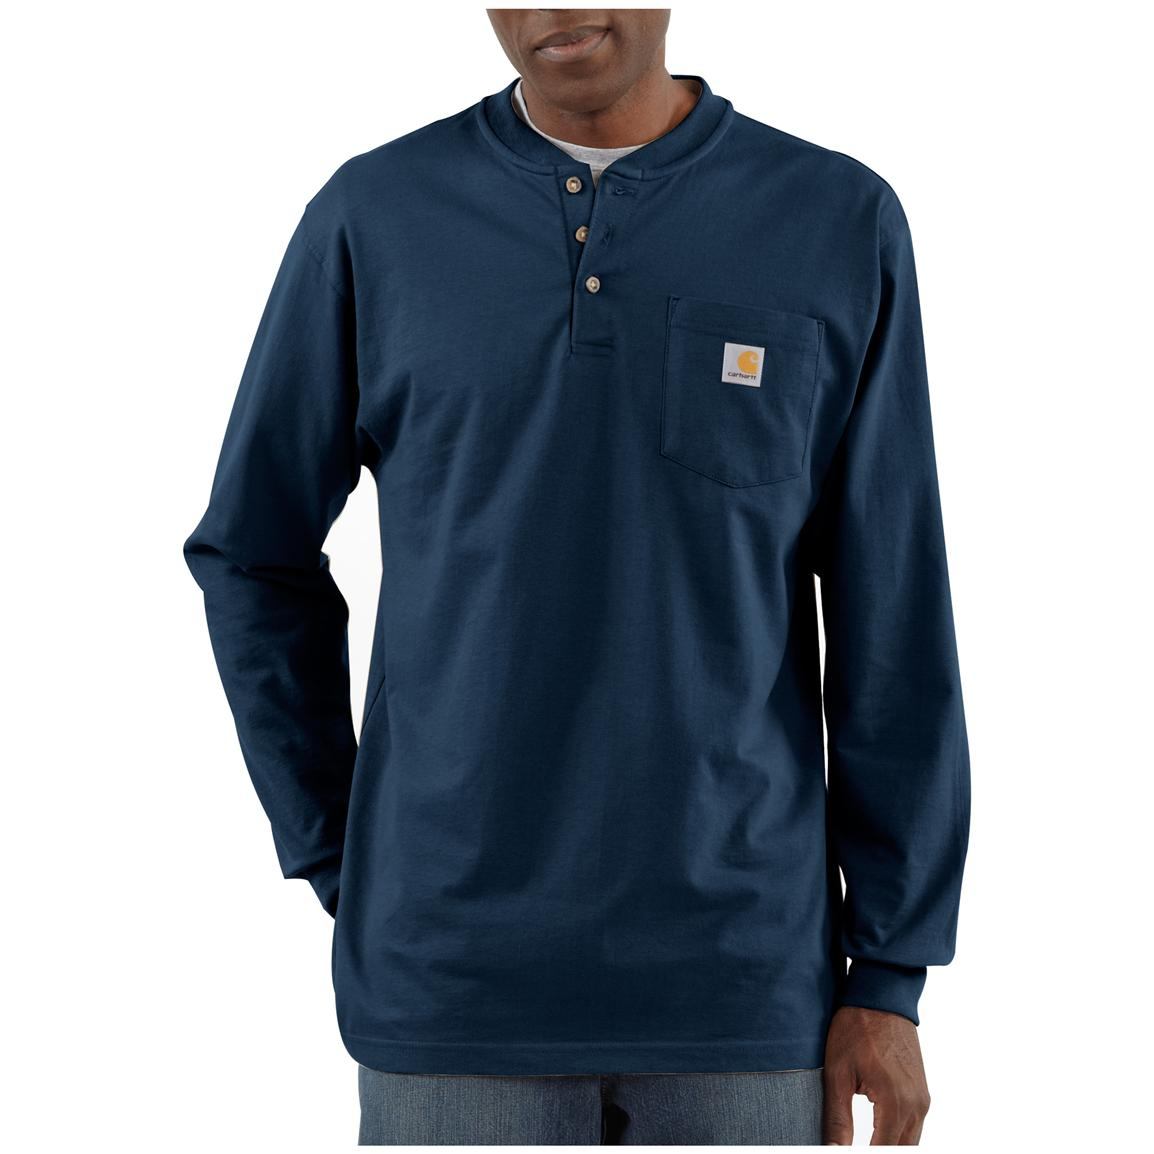 Carhartt® Long-sleeved Pocket Henley Shirt, Navy